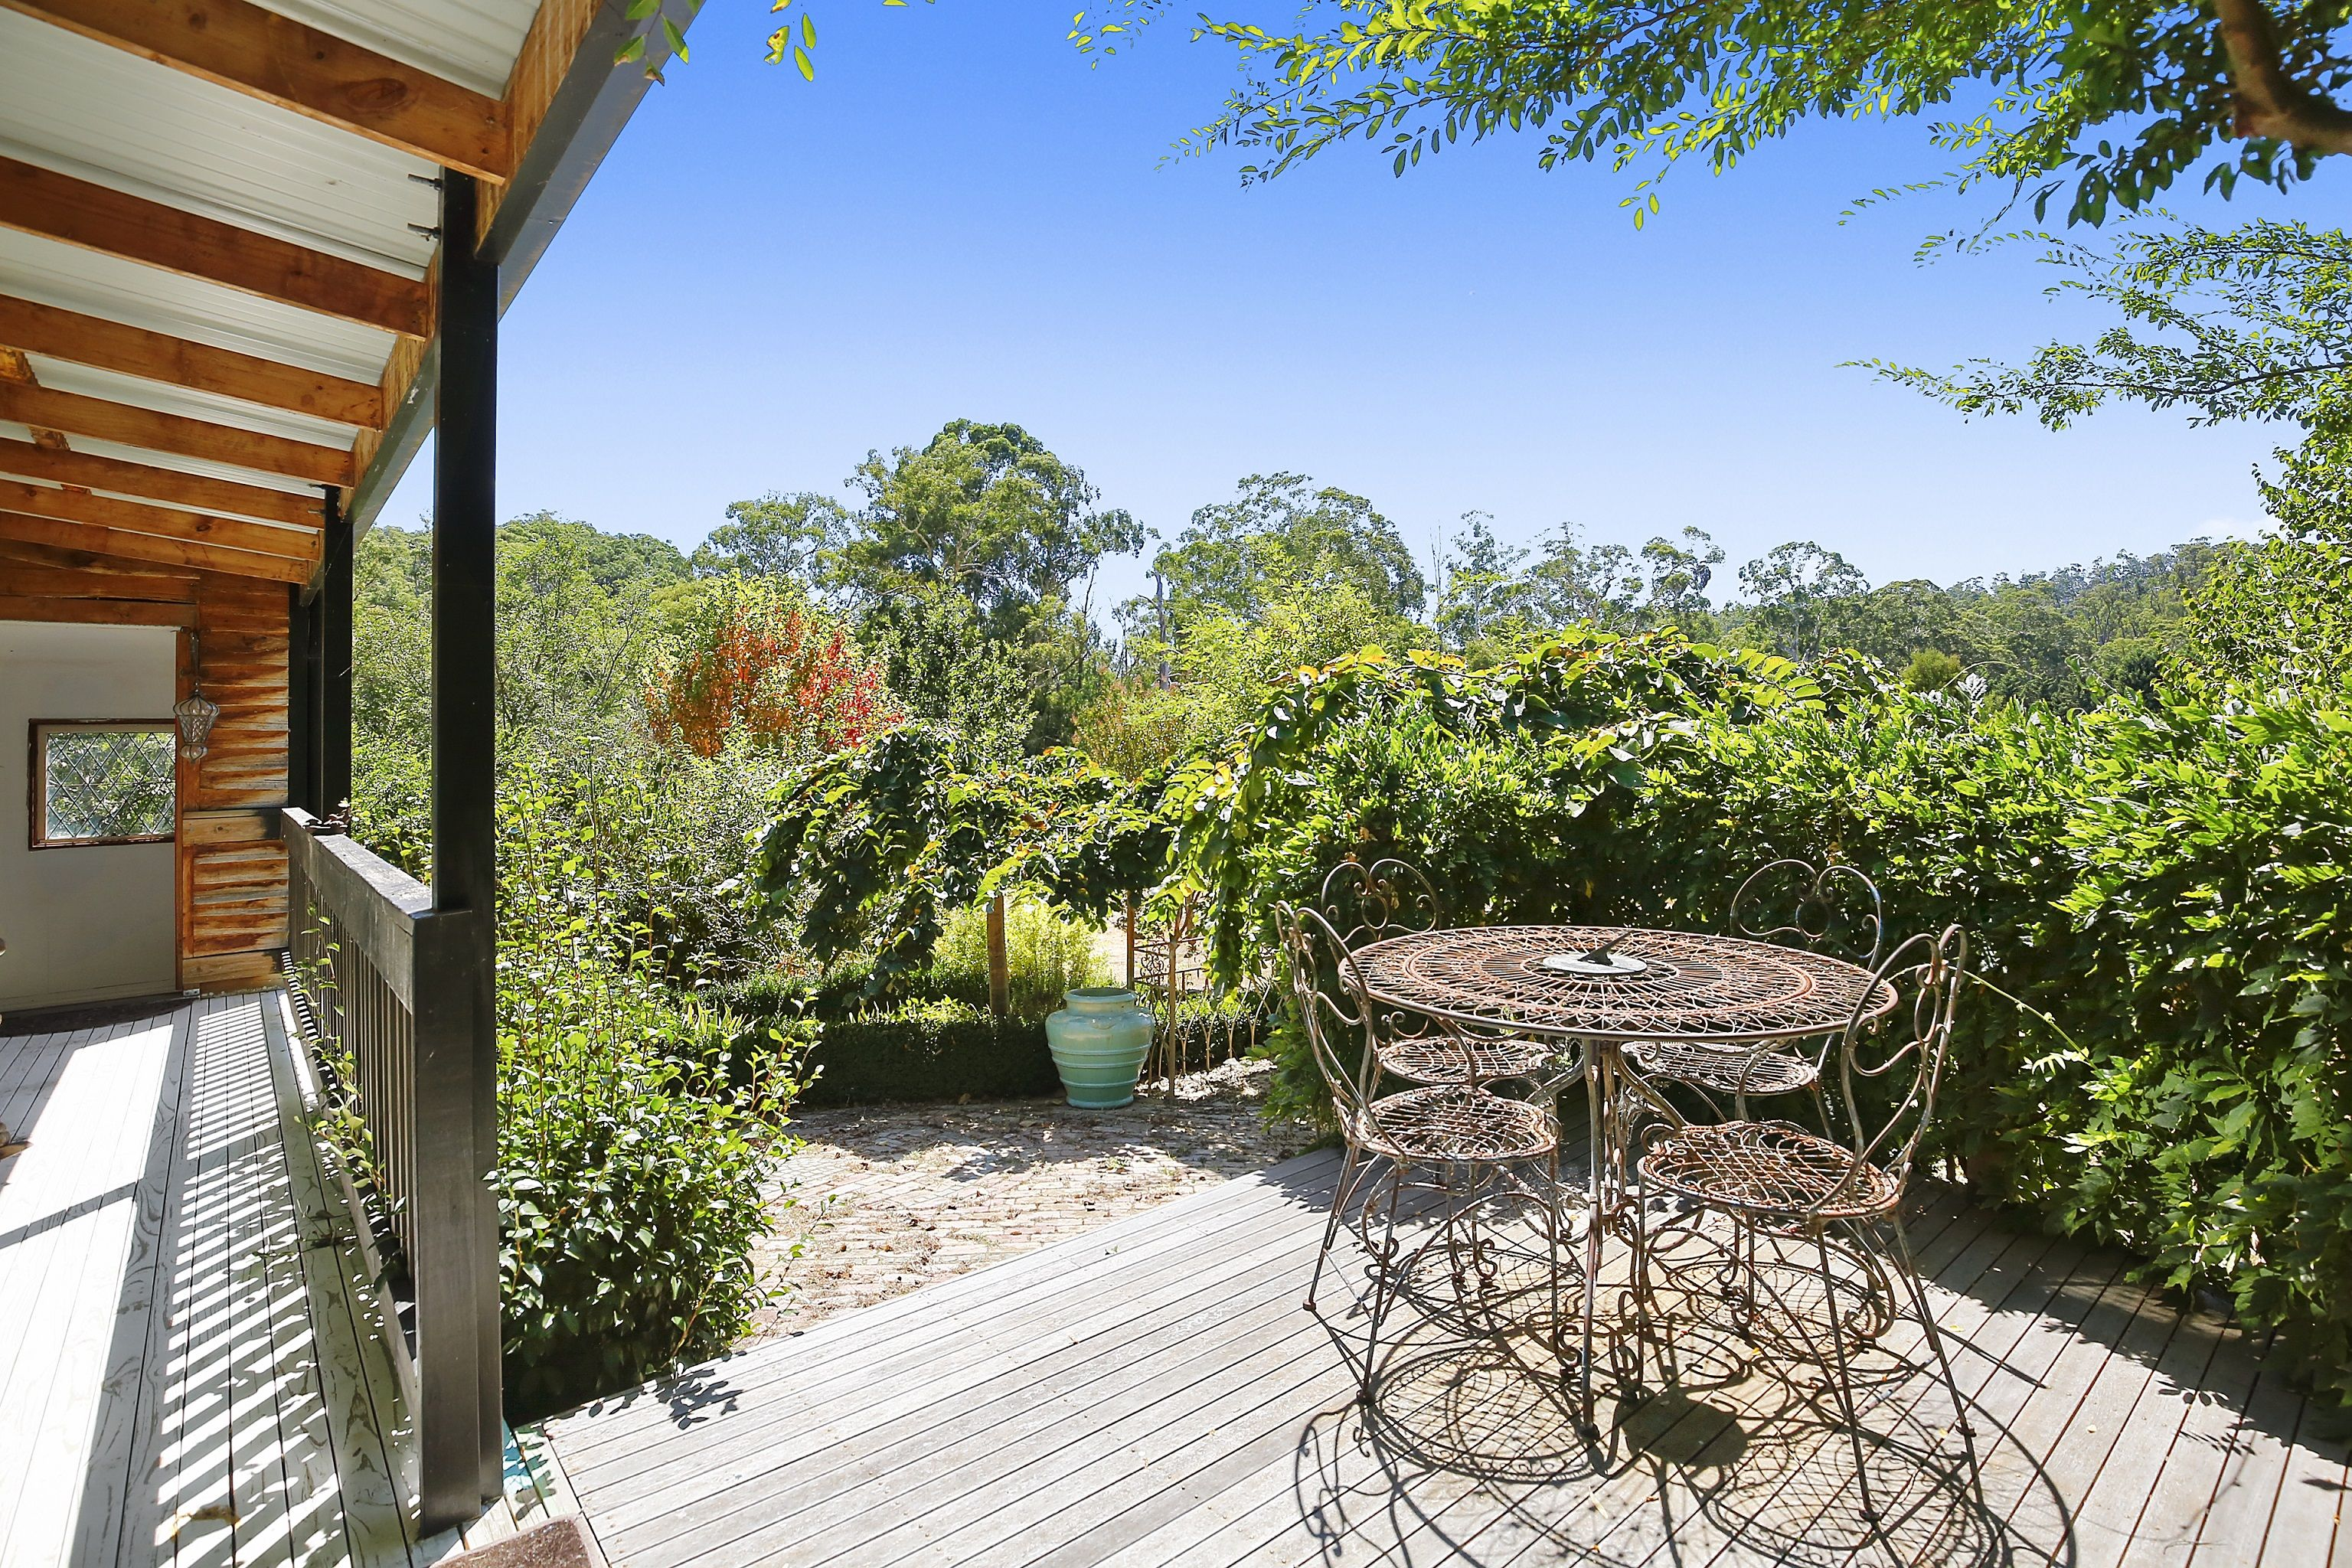 1139 Kinglake - Glenburn Road Glenburn